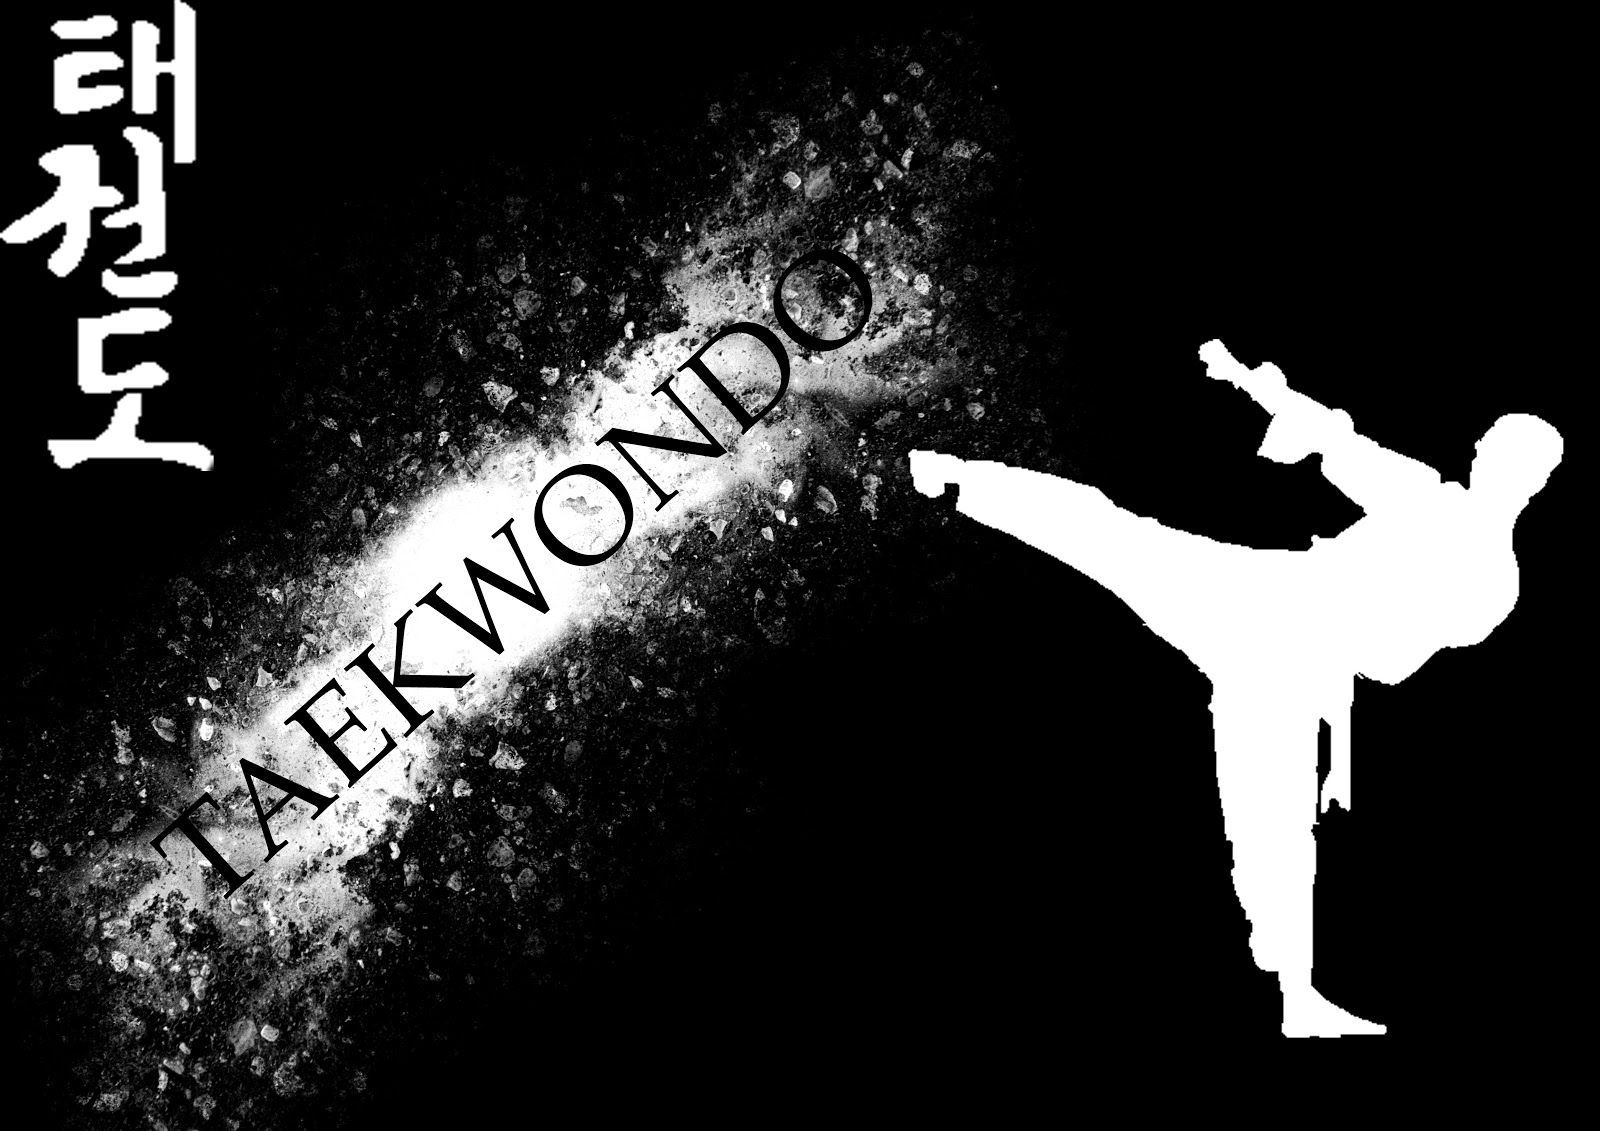 1600x1131 Taekwondo Wallpaper Download | Tae Kwon Do | Pinterest | Wallpaper ...